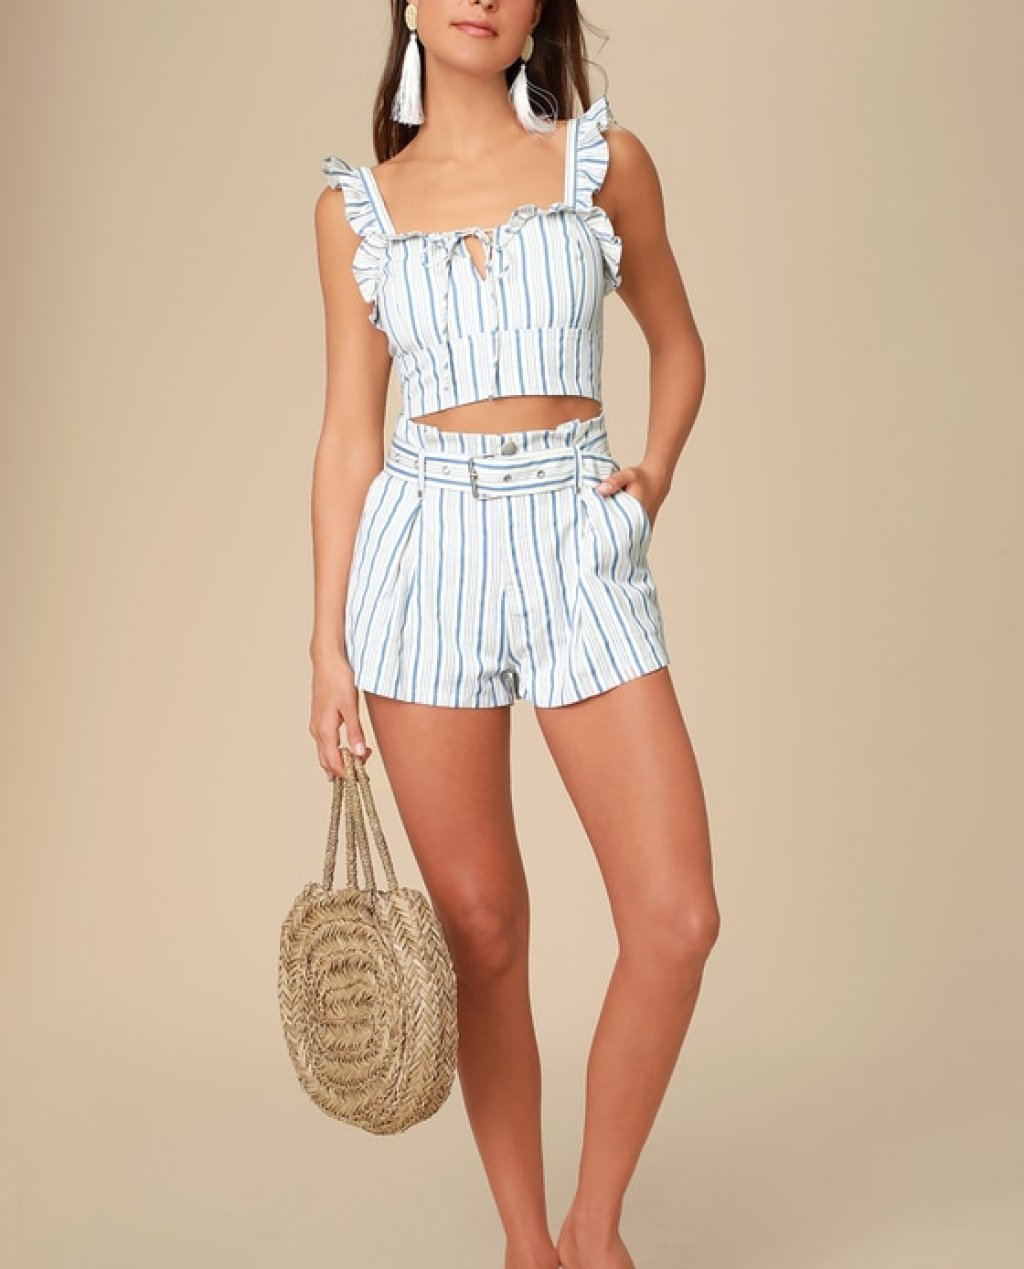 Surfs Up Blue and White Striped Belted Shorts